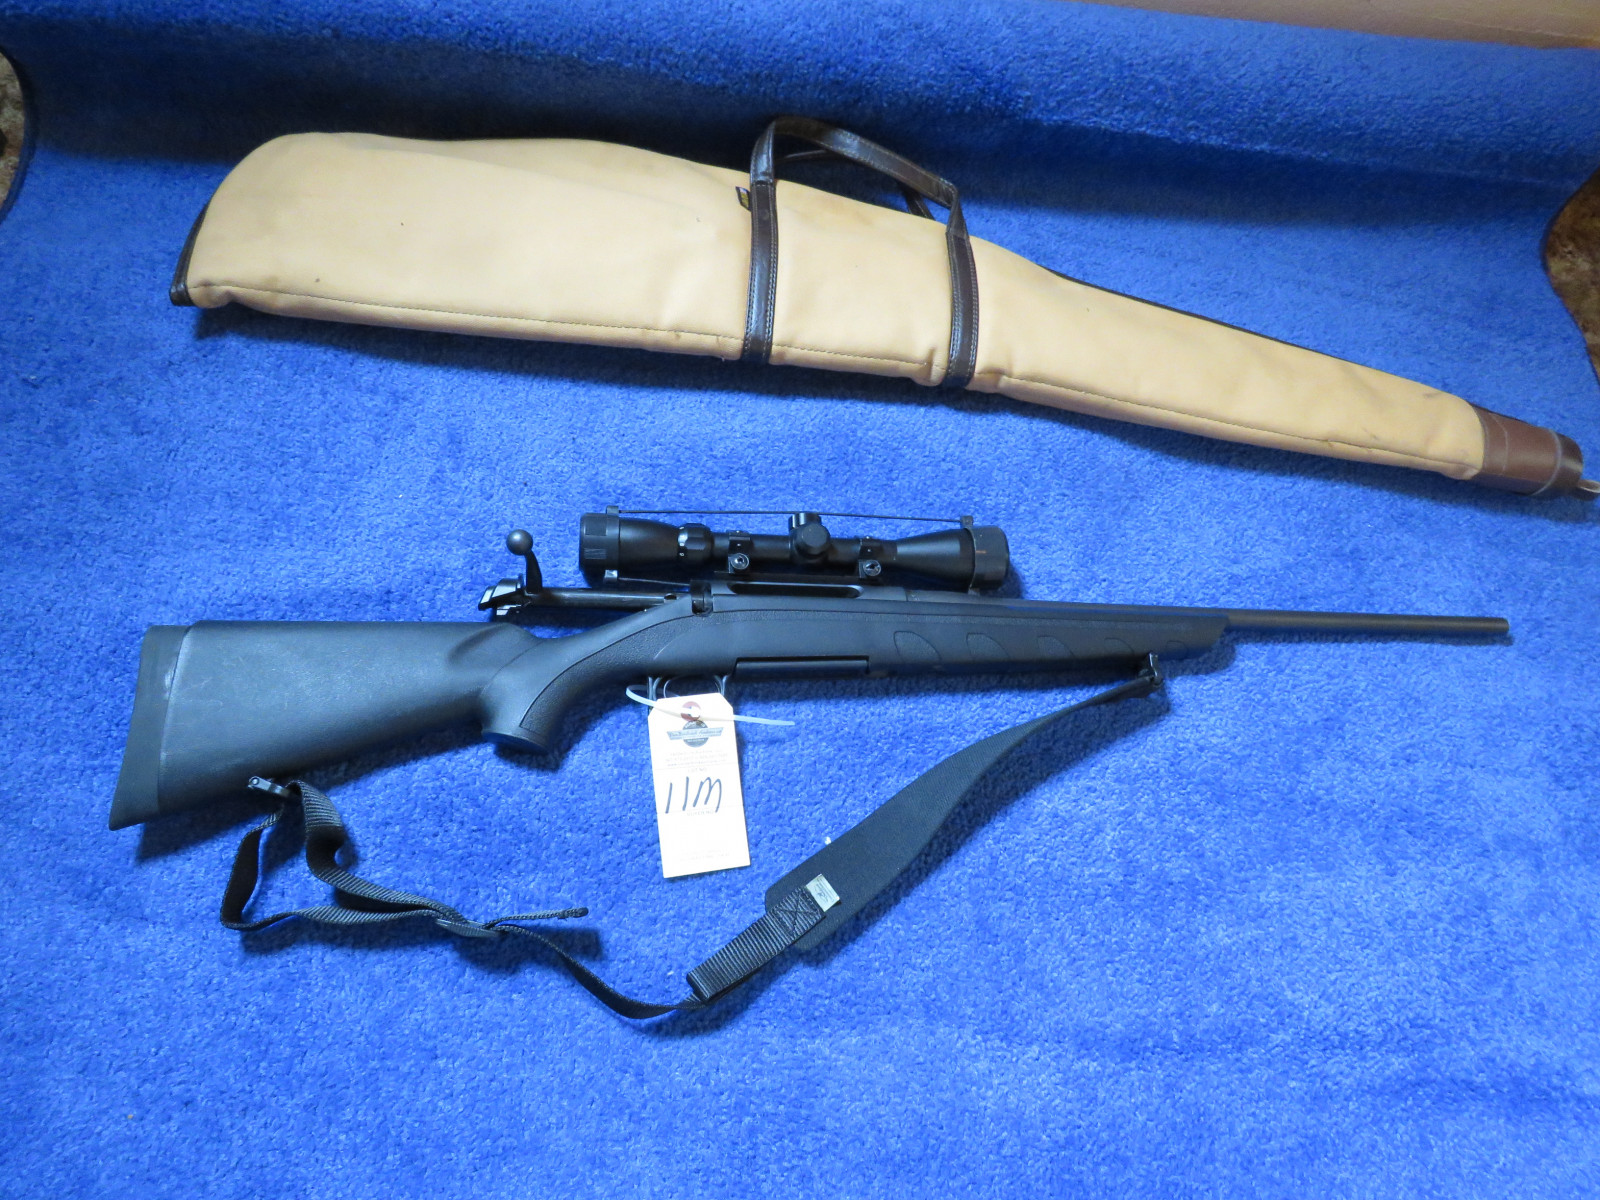 Remington Model 770 Bolt Action Rifle M71765489 - Image 1